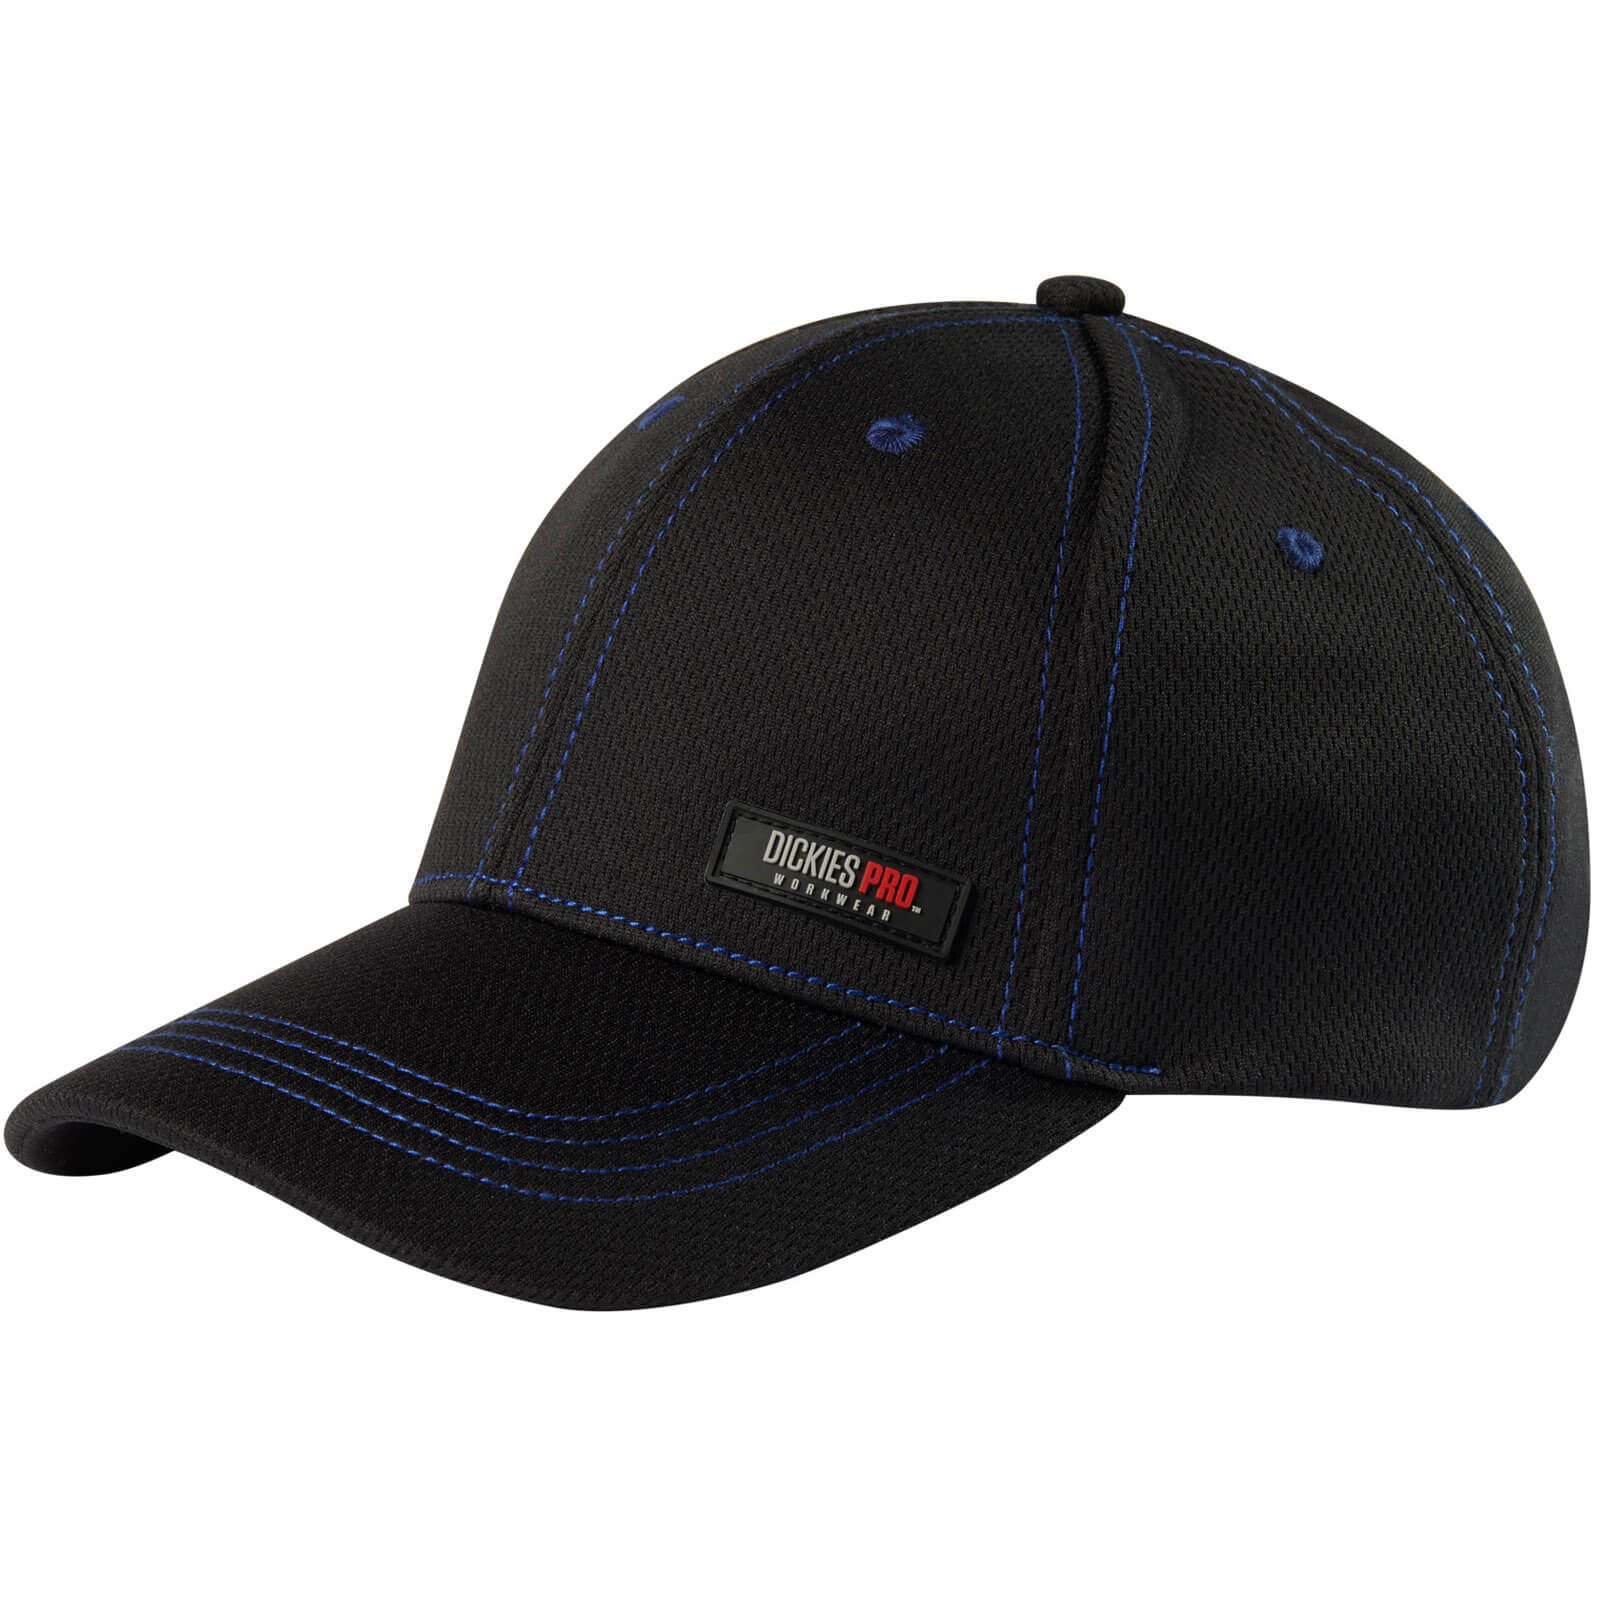 Image of Dickies Pro Cap Royal Blue / Black One Size